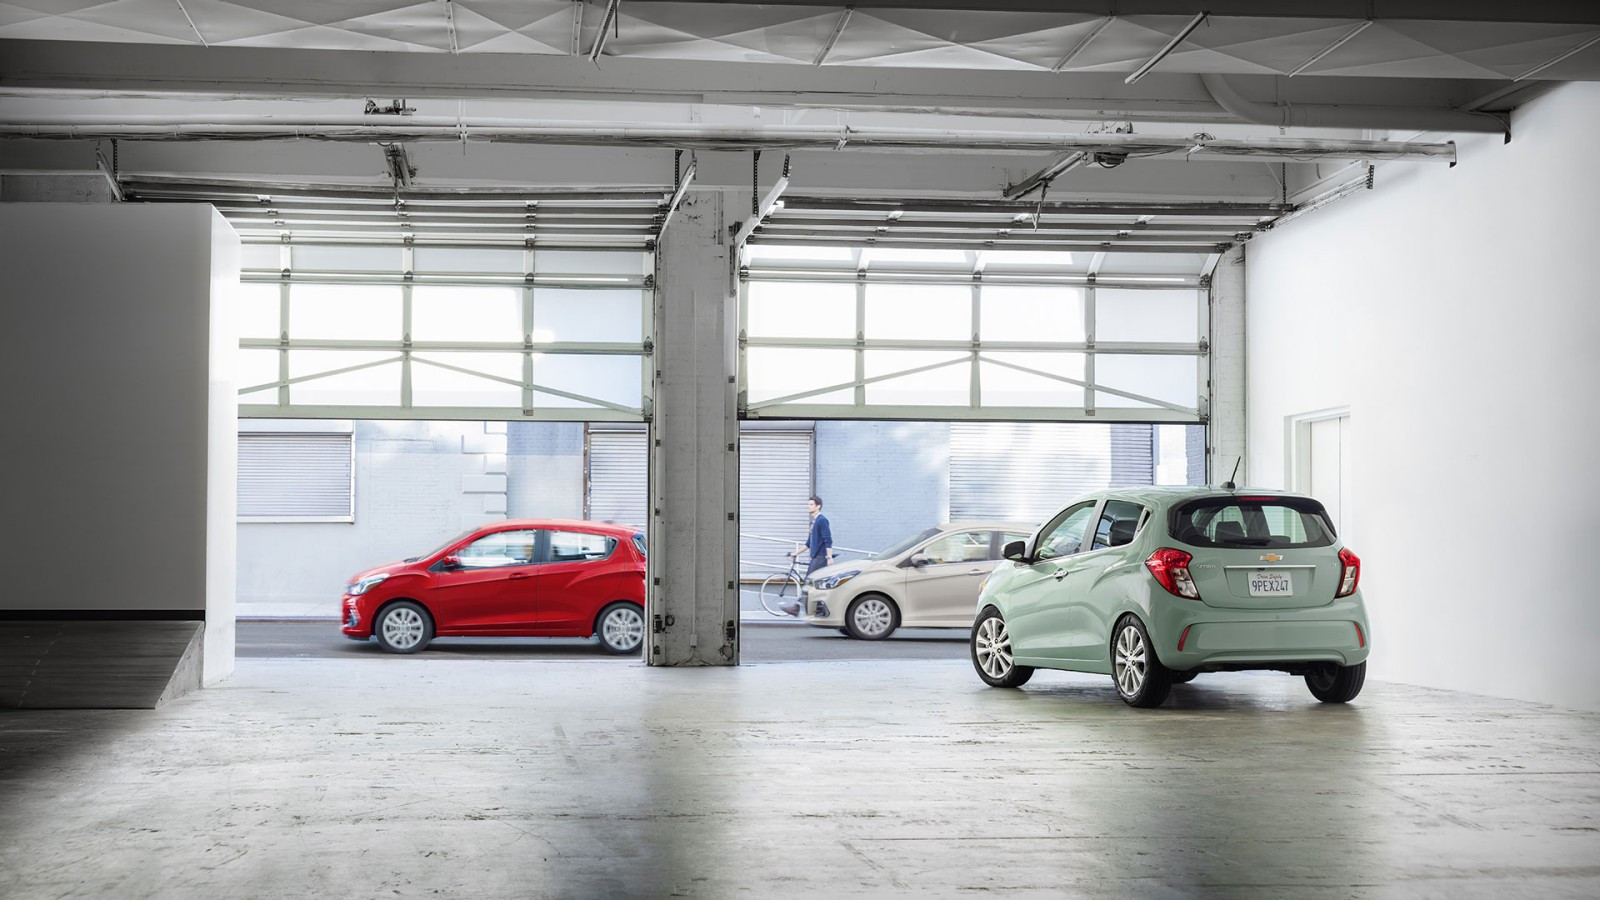 2017 Chevrolet Spark red and green exterior models